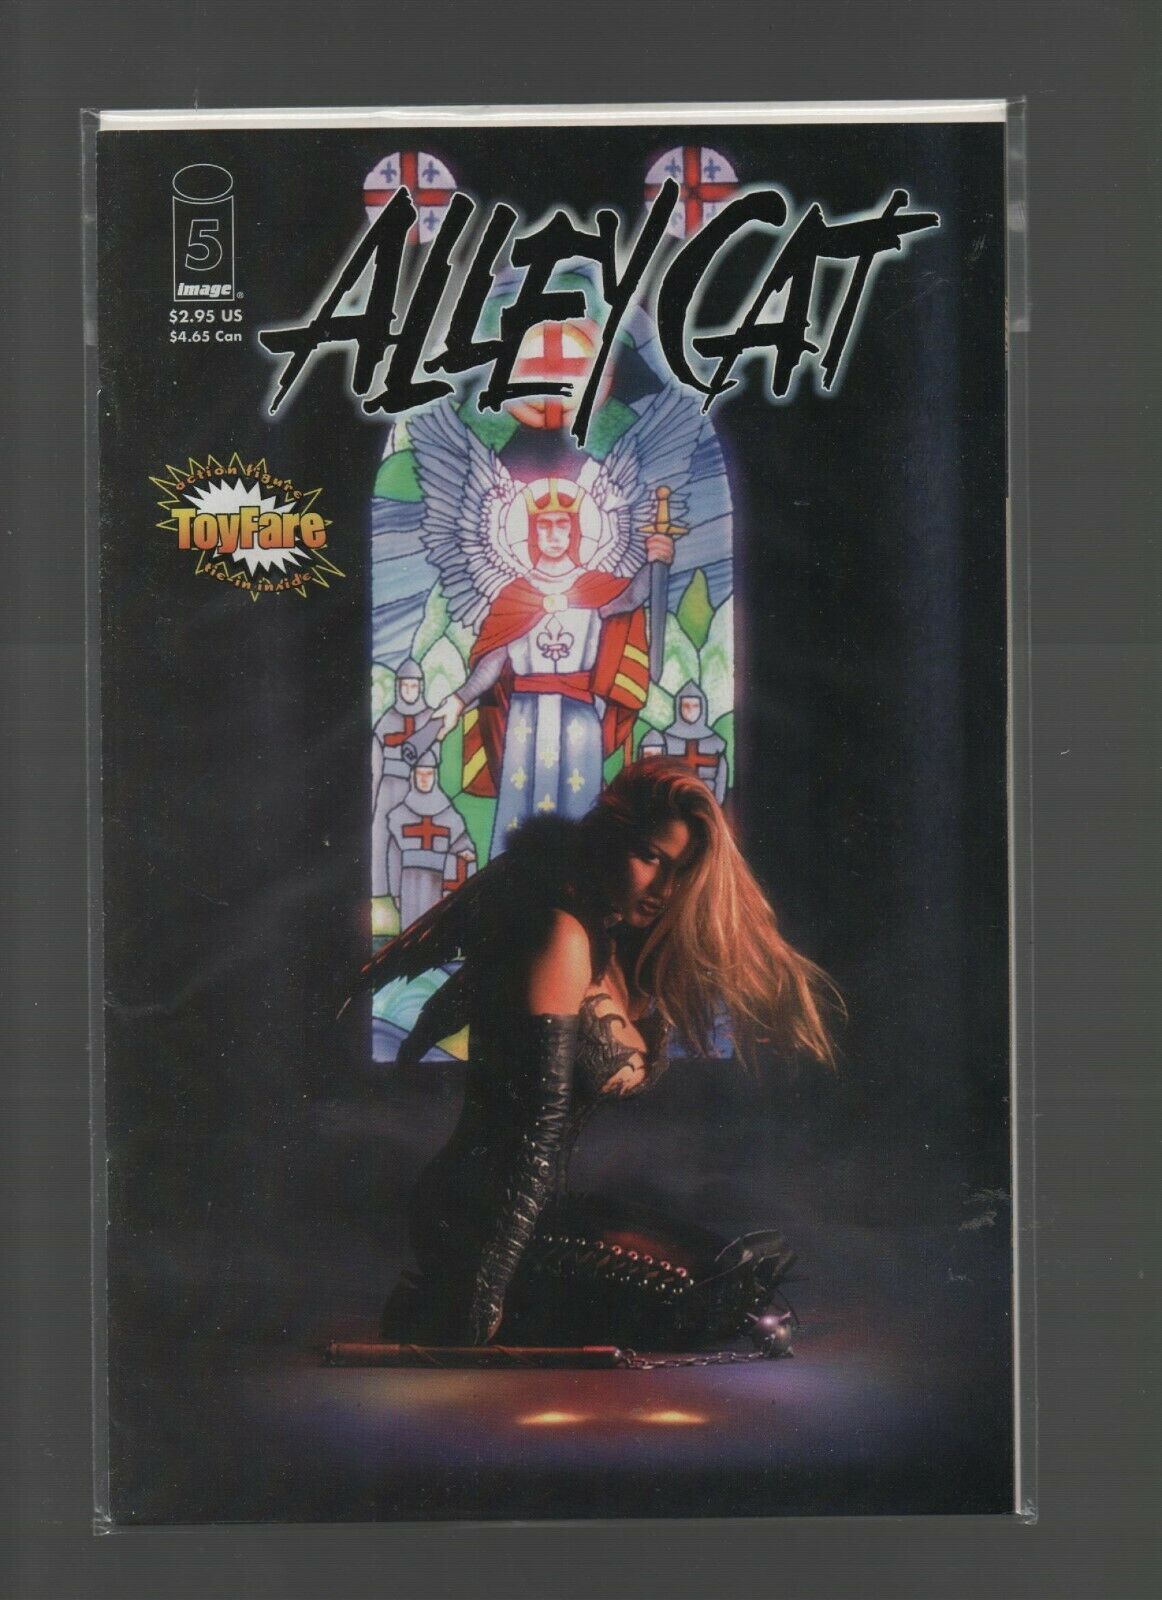 Alley Cat #5 - Image Comics - Alley Baggett - 1999 - Martyr Part 2 - ToyFare.